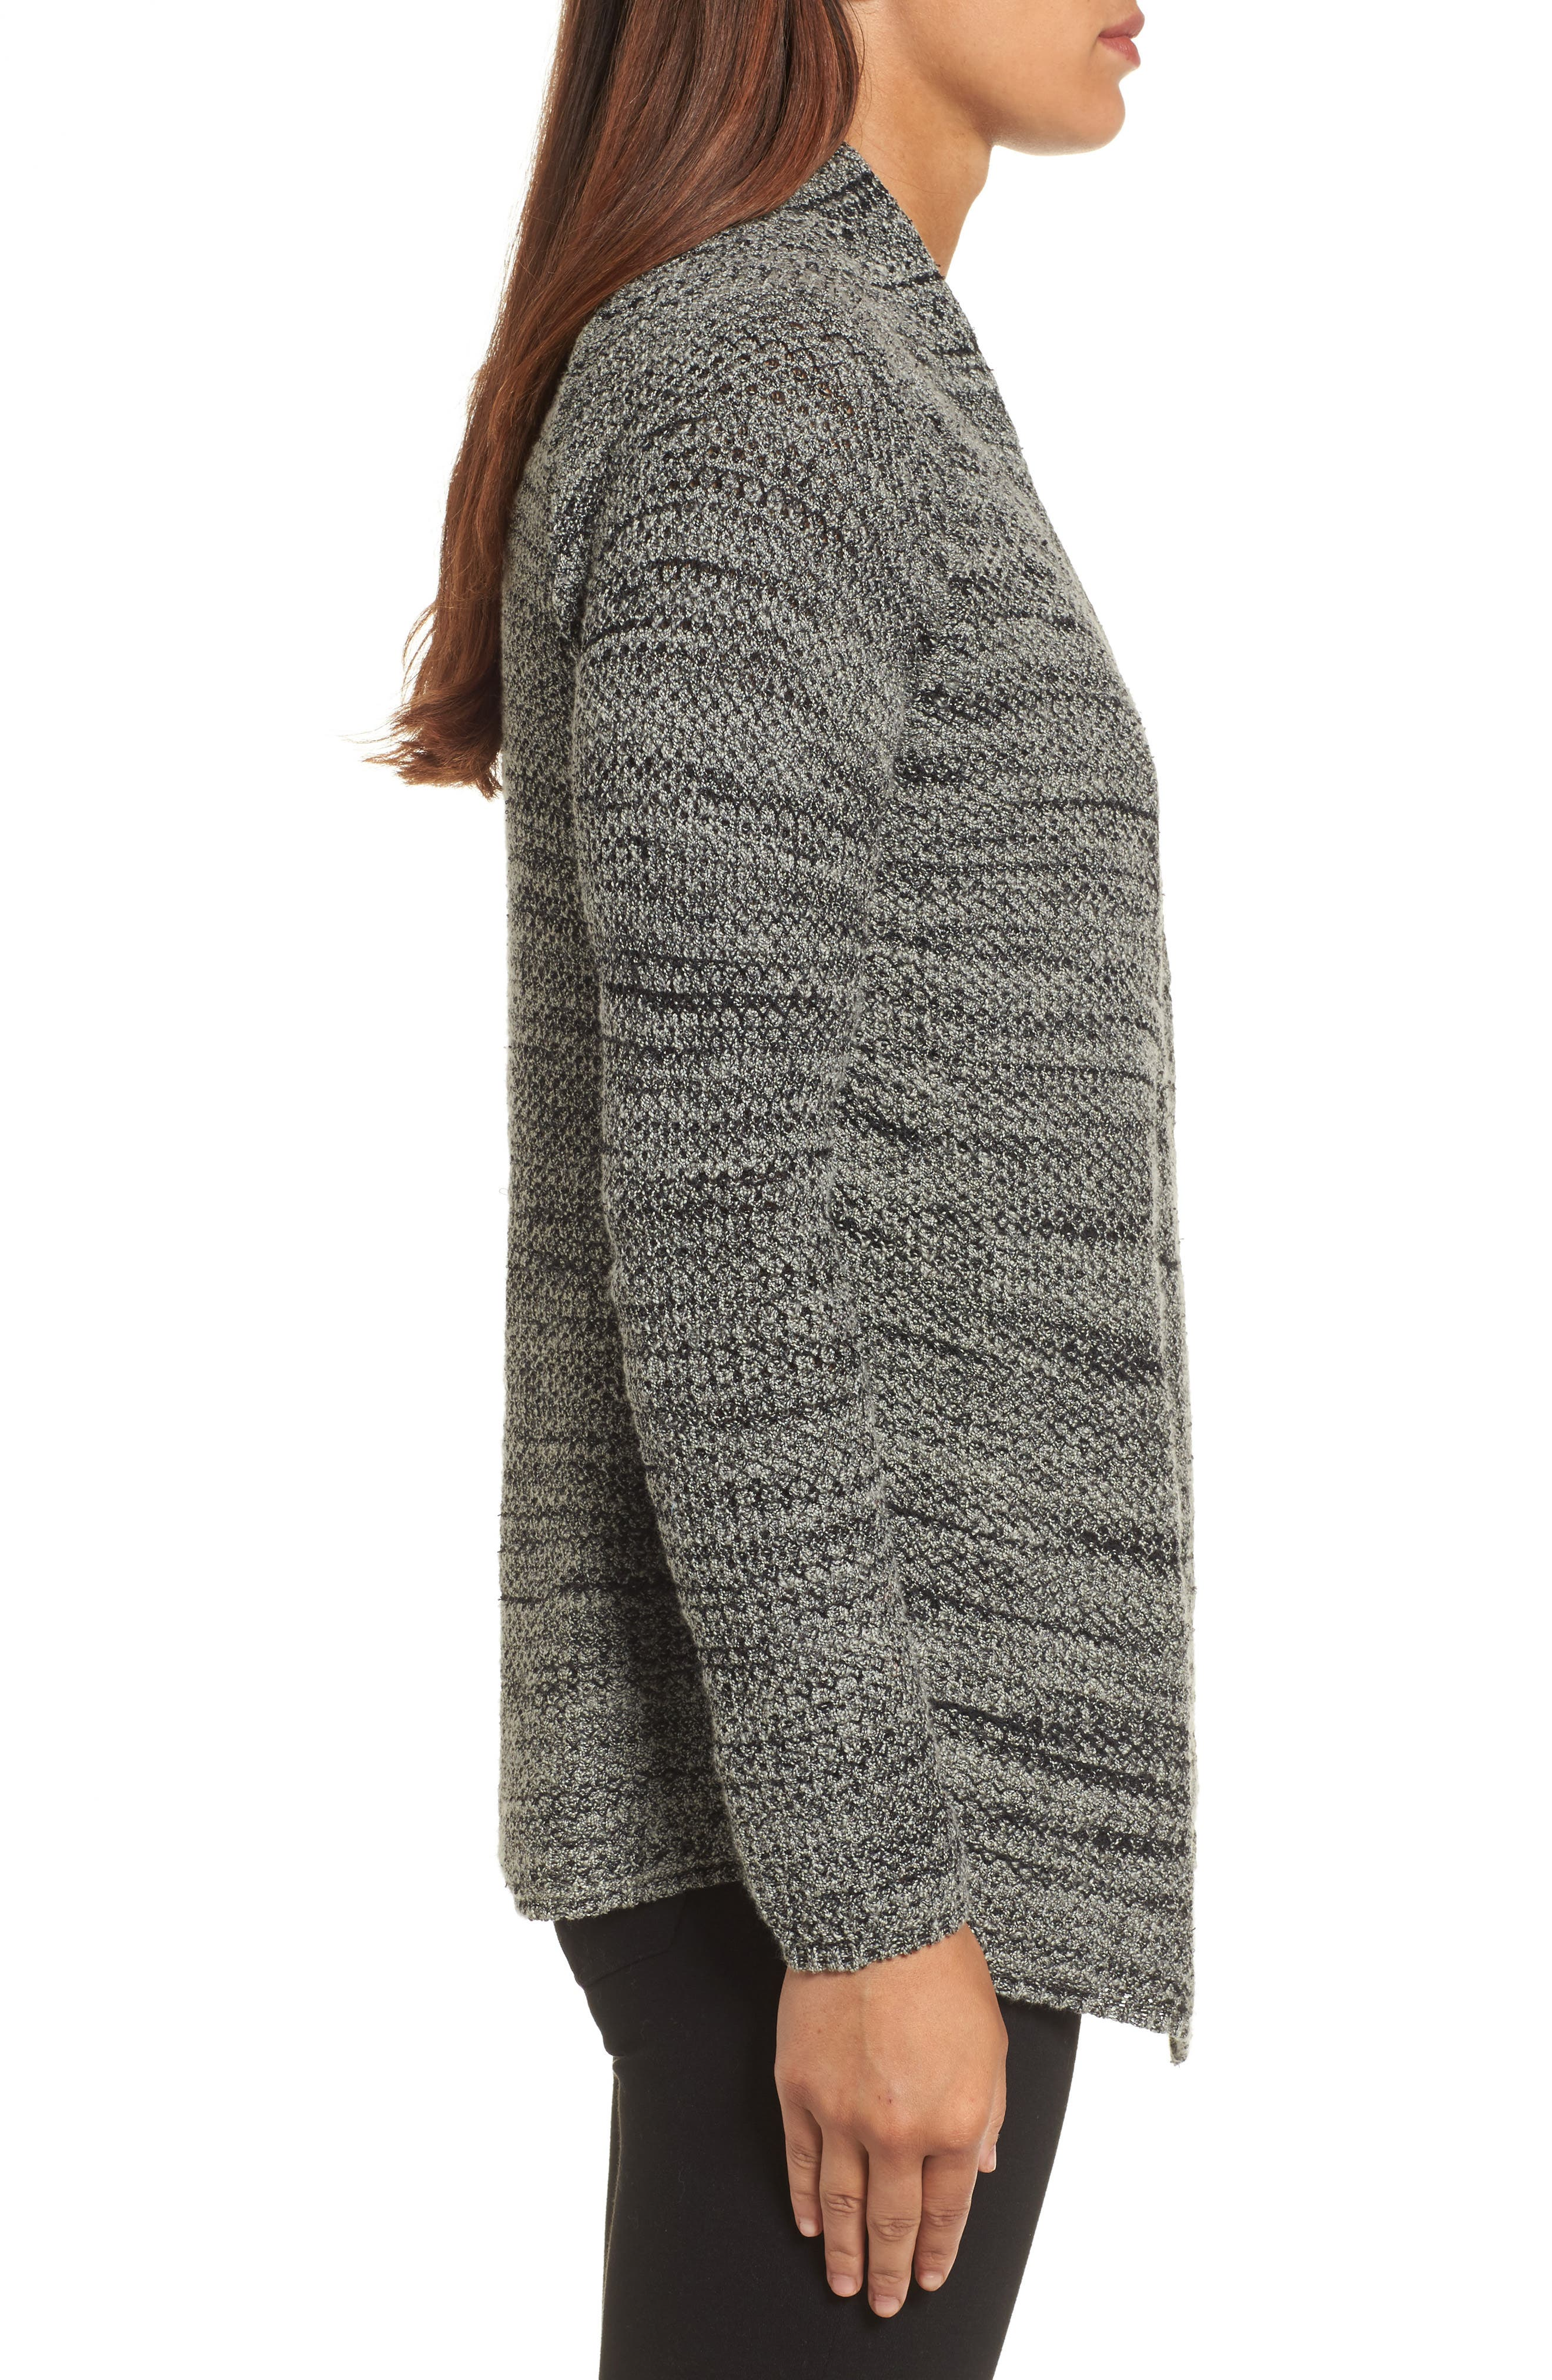 Thick & Thin Cardigan,                             Alternate thumbnail 3, color,                             259